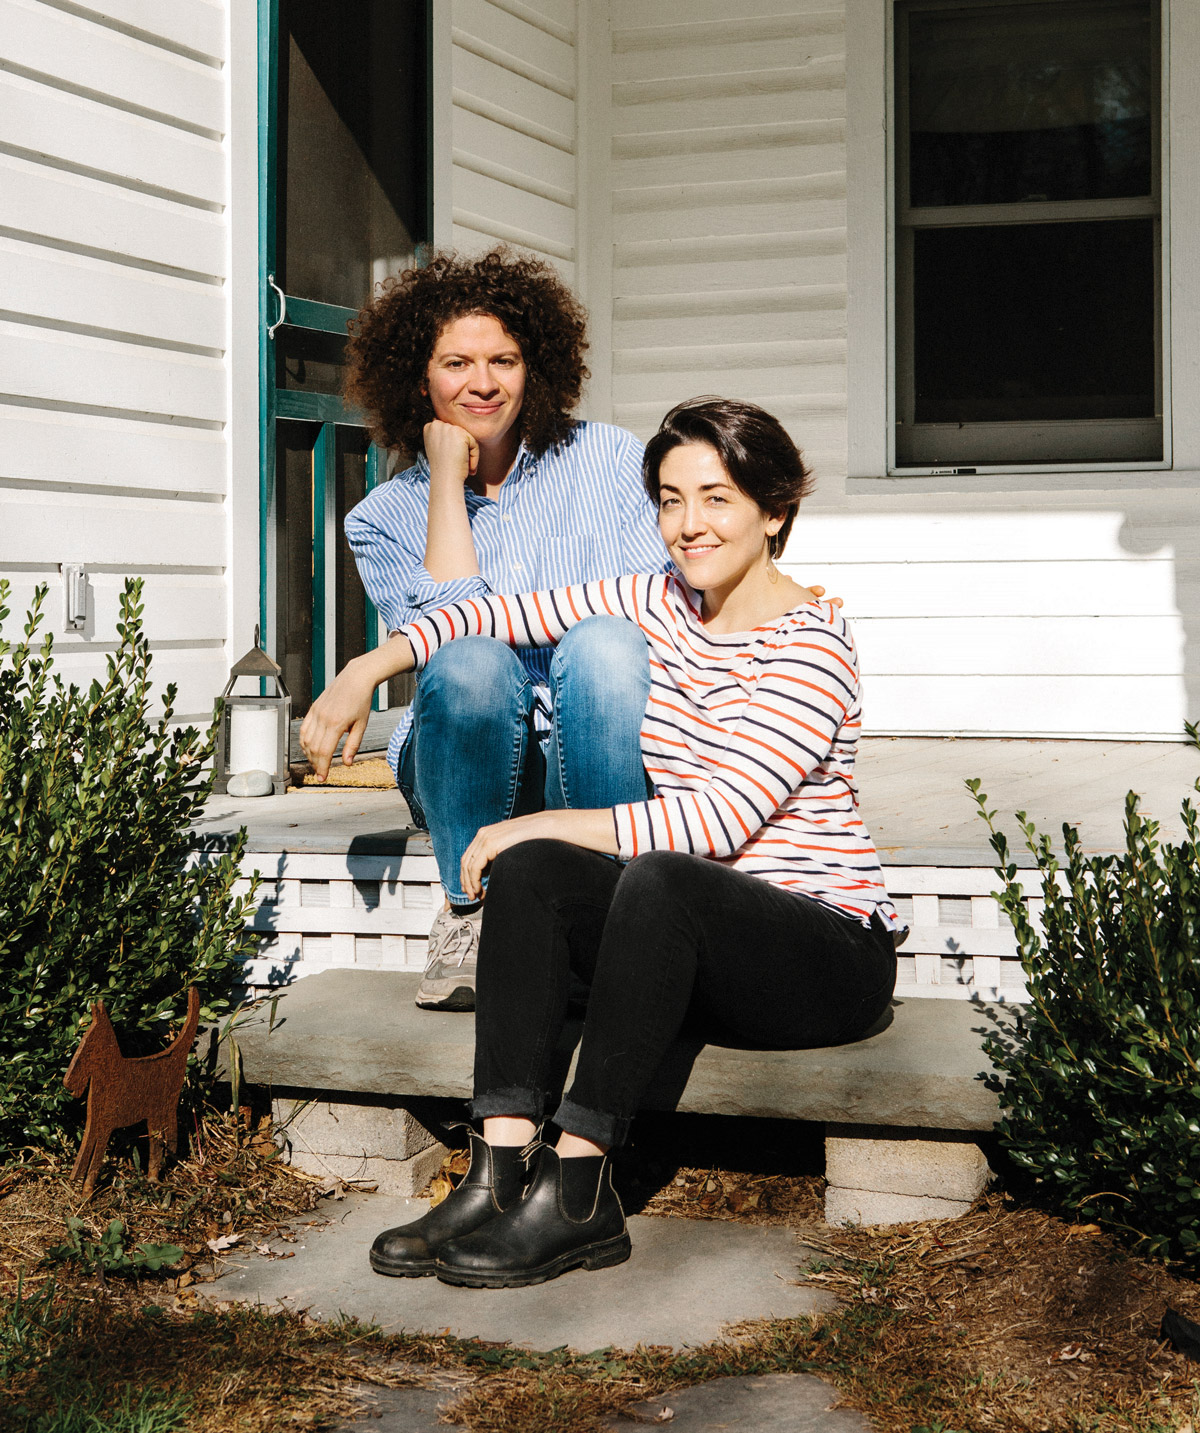 Celebrated cookbook author Julia Turshen (left) with her wife, Design*Sponge founder Grace Bonney at their home in NY's Hudson Valley.